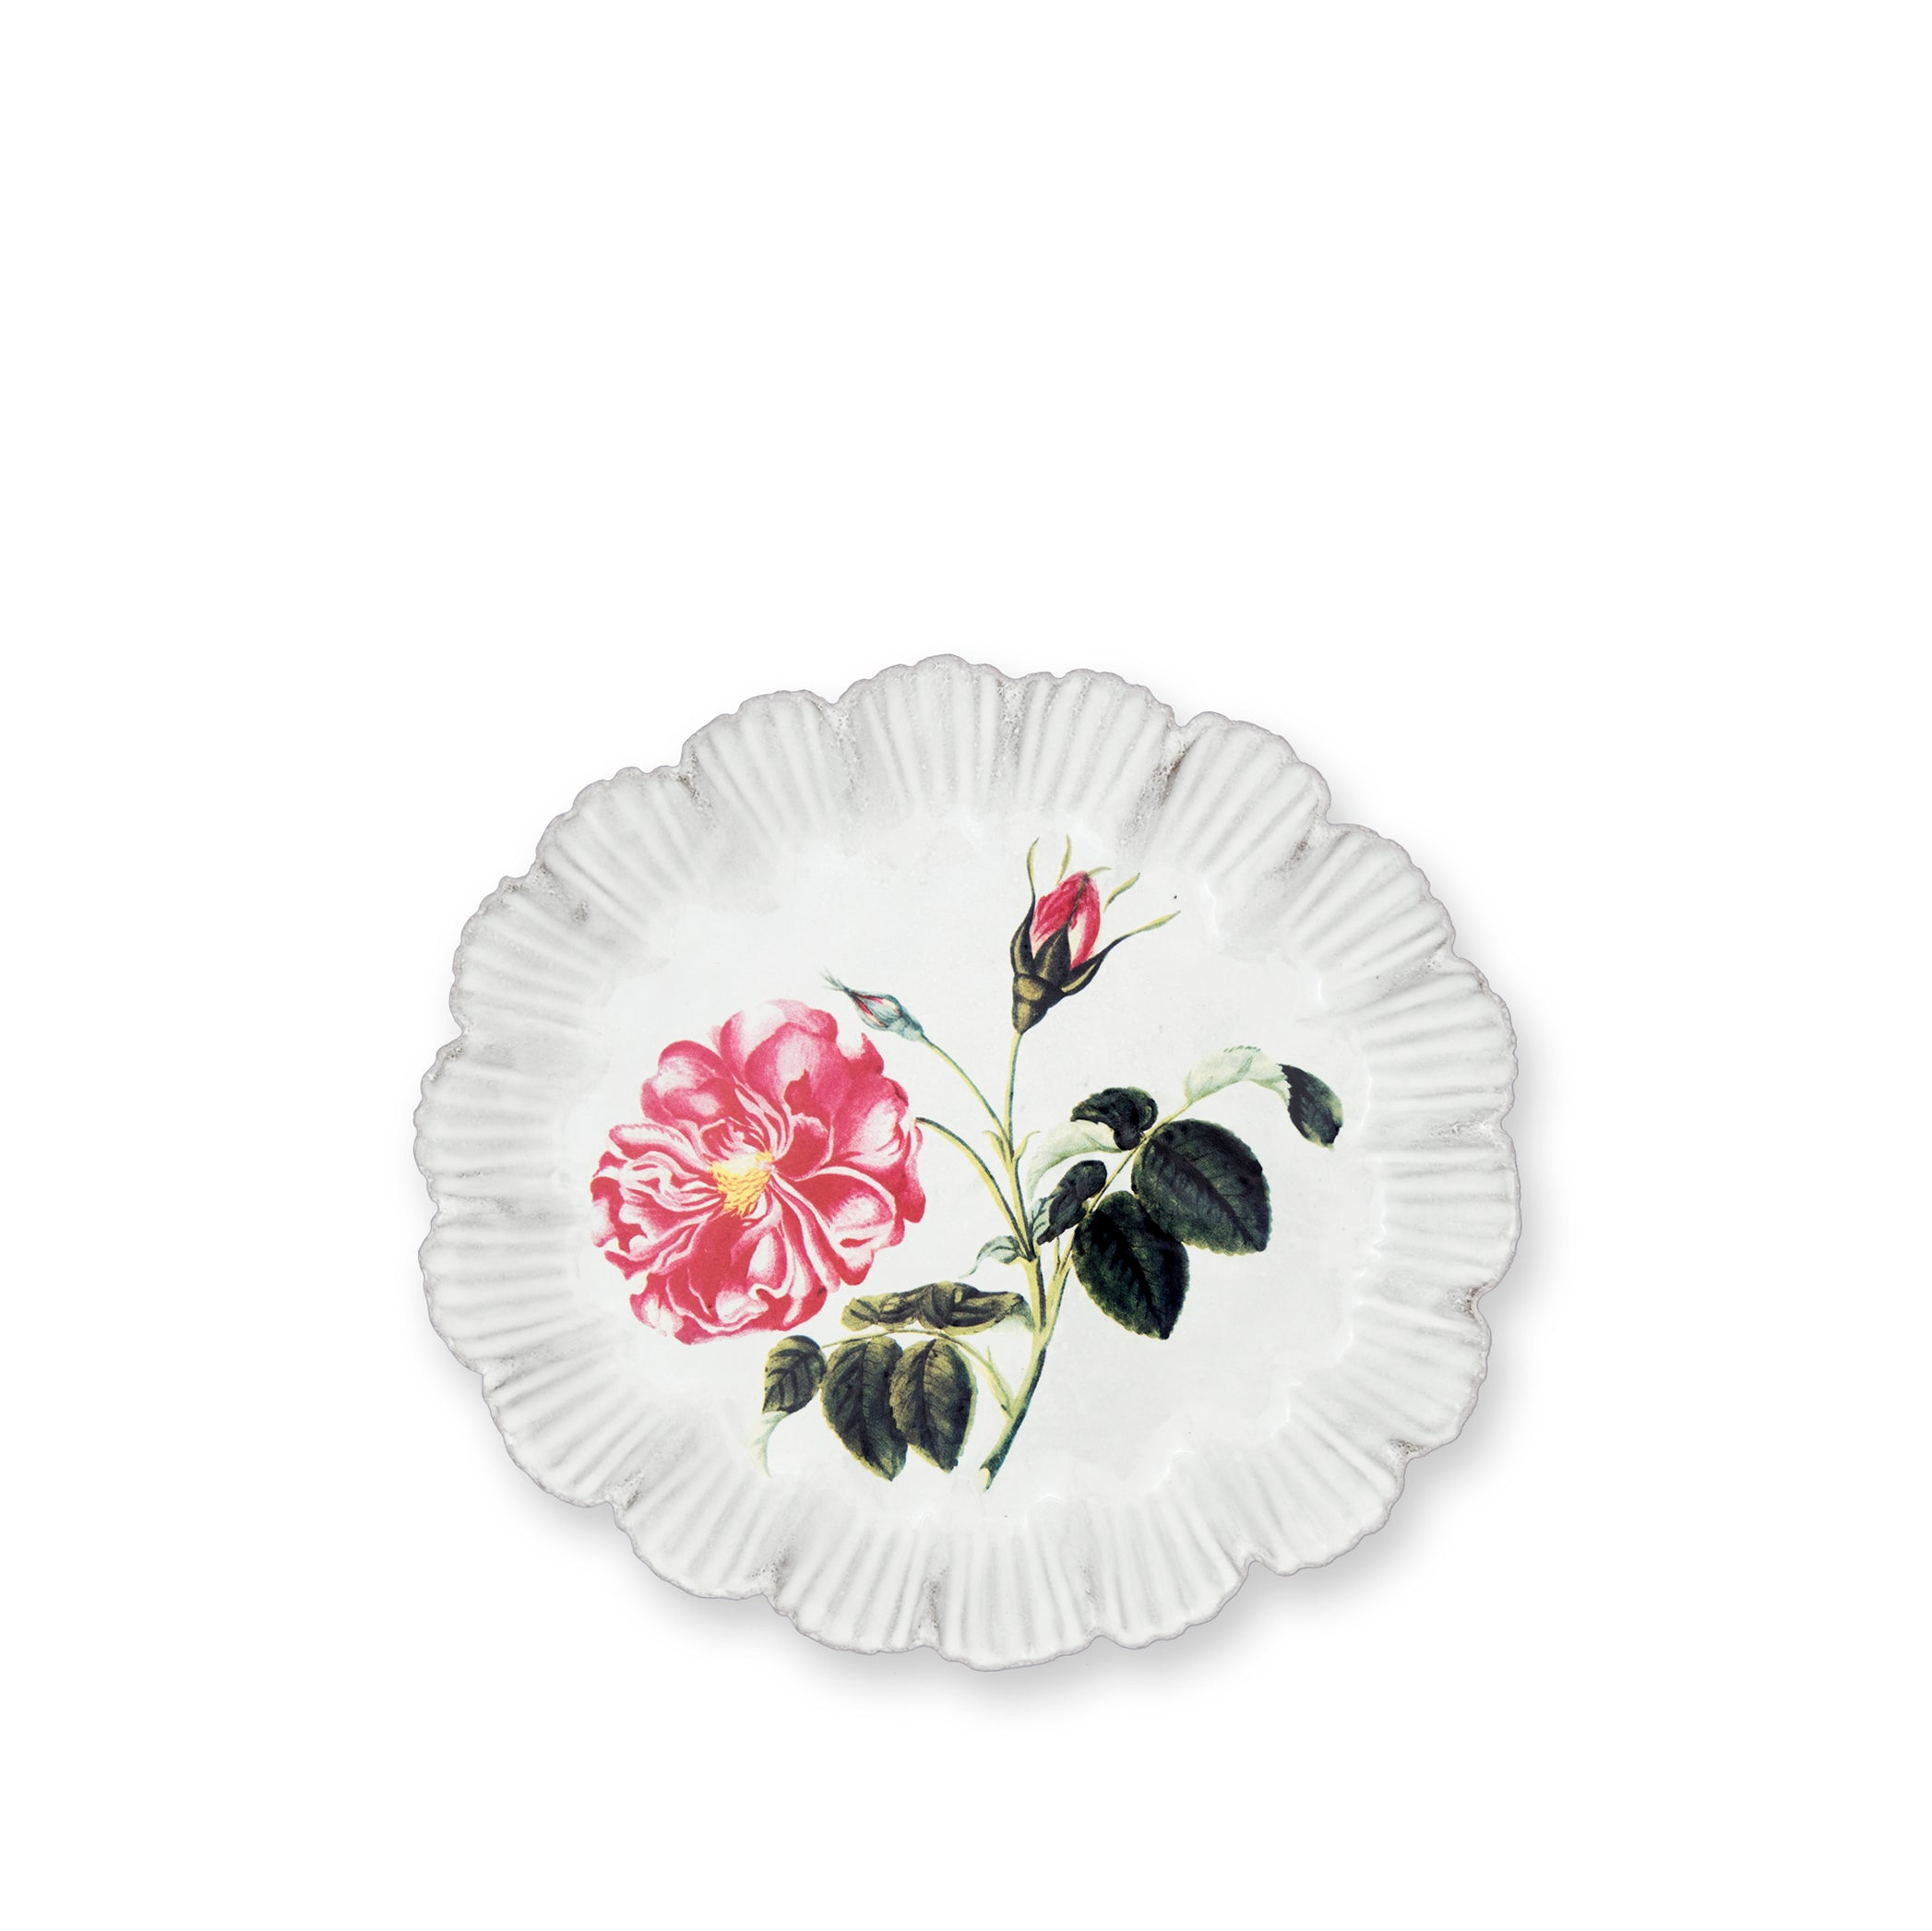 Rose Dinner Plate by Astier de Villatte